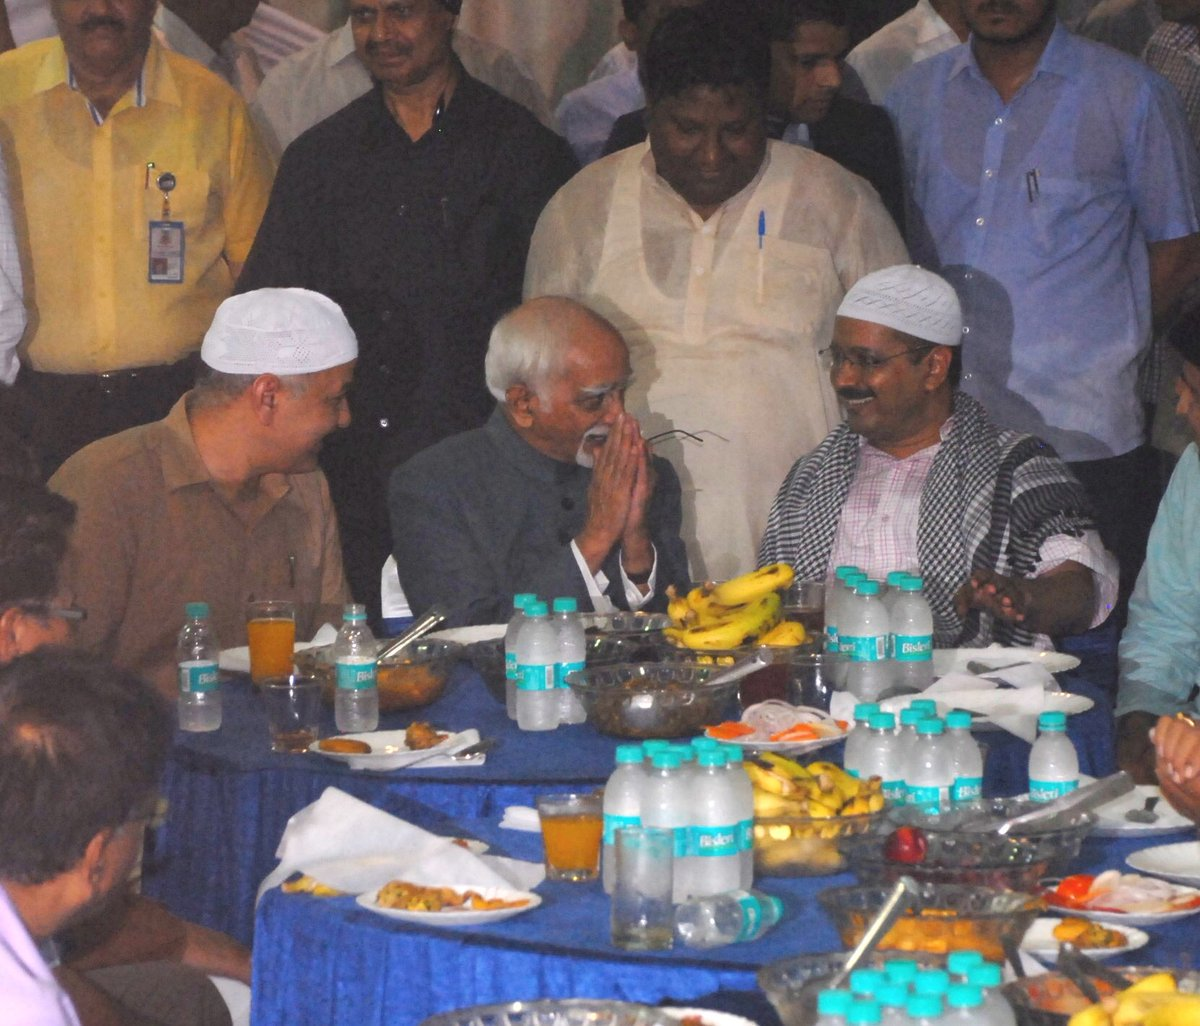 AGAIN. Non-muslims wearing cap while the muslims(VP Ansari and MLA Hussain) not wearing. Seriously amazing this https://t.co/WifKtE3Q4D